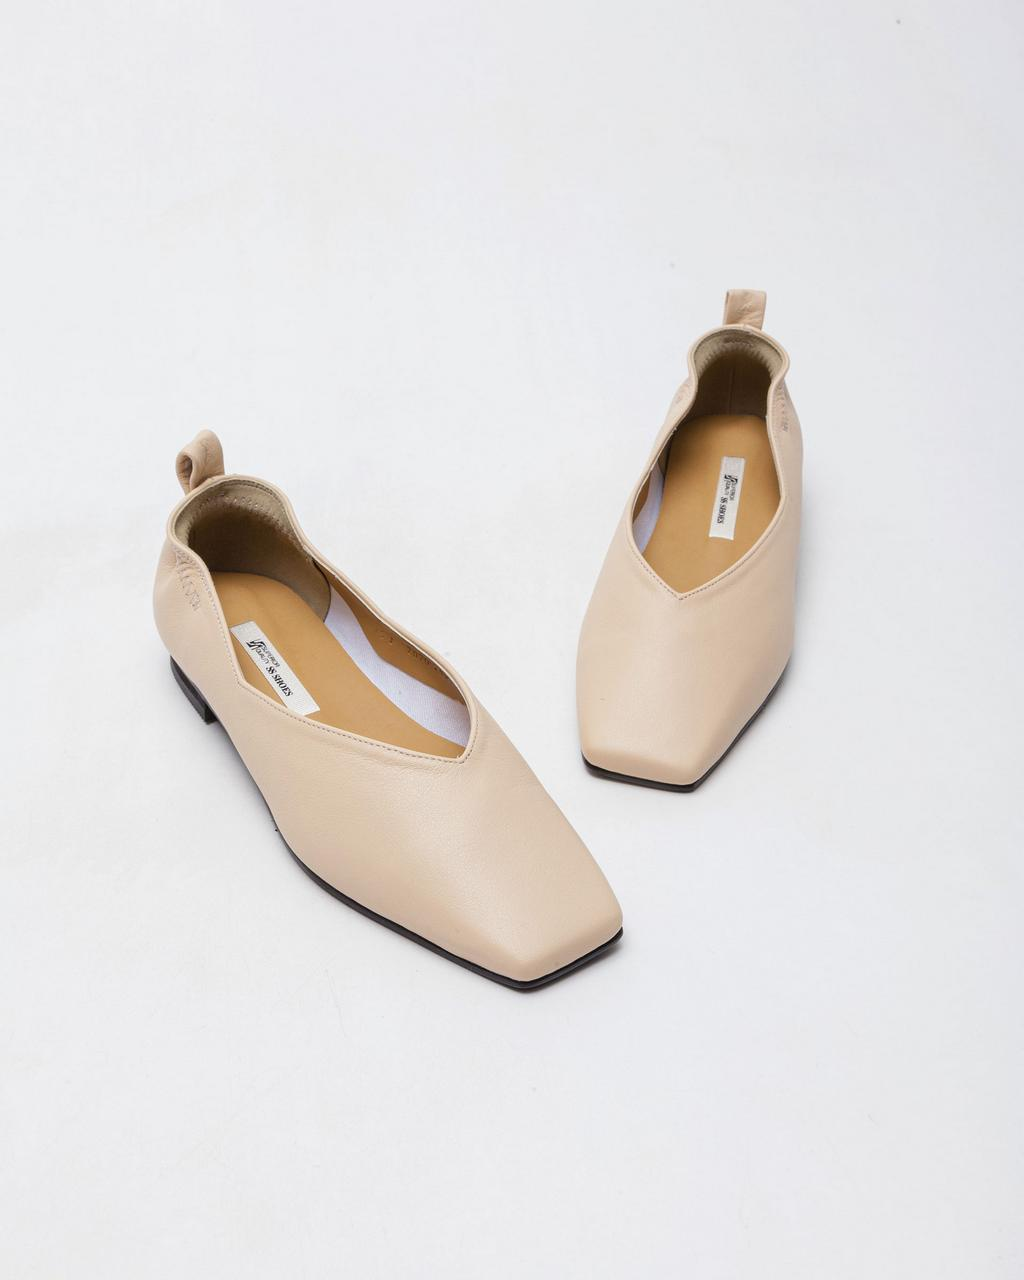 Tagtraume Swift-13 - Beige(베이지)